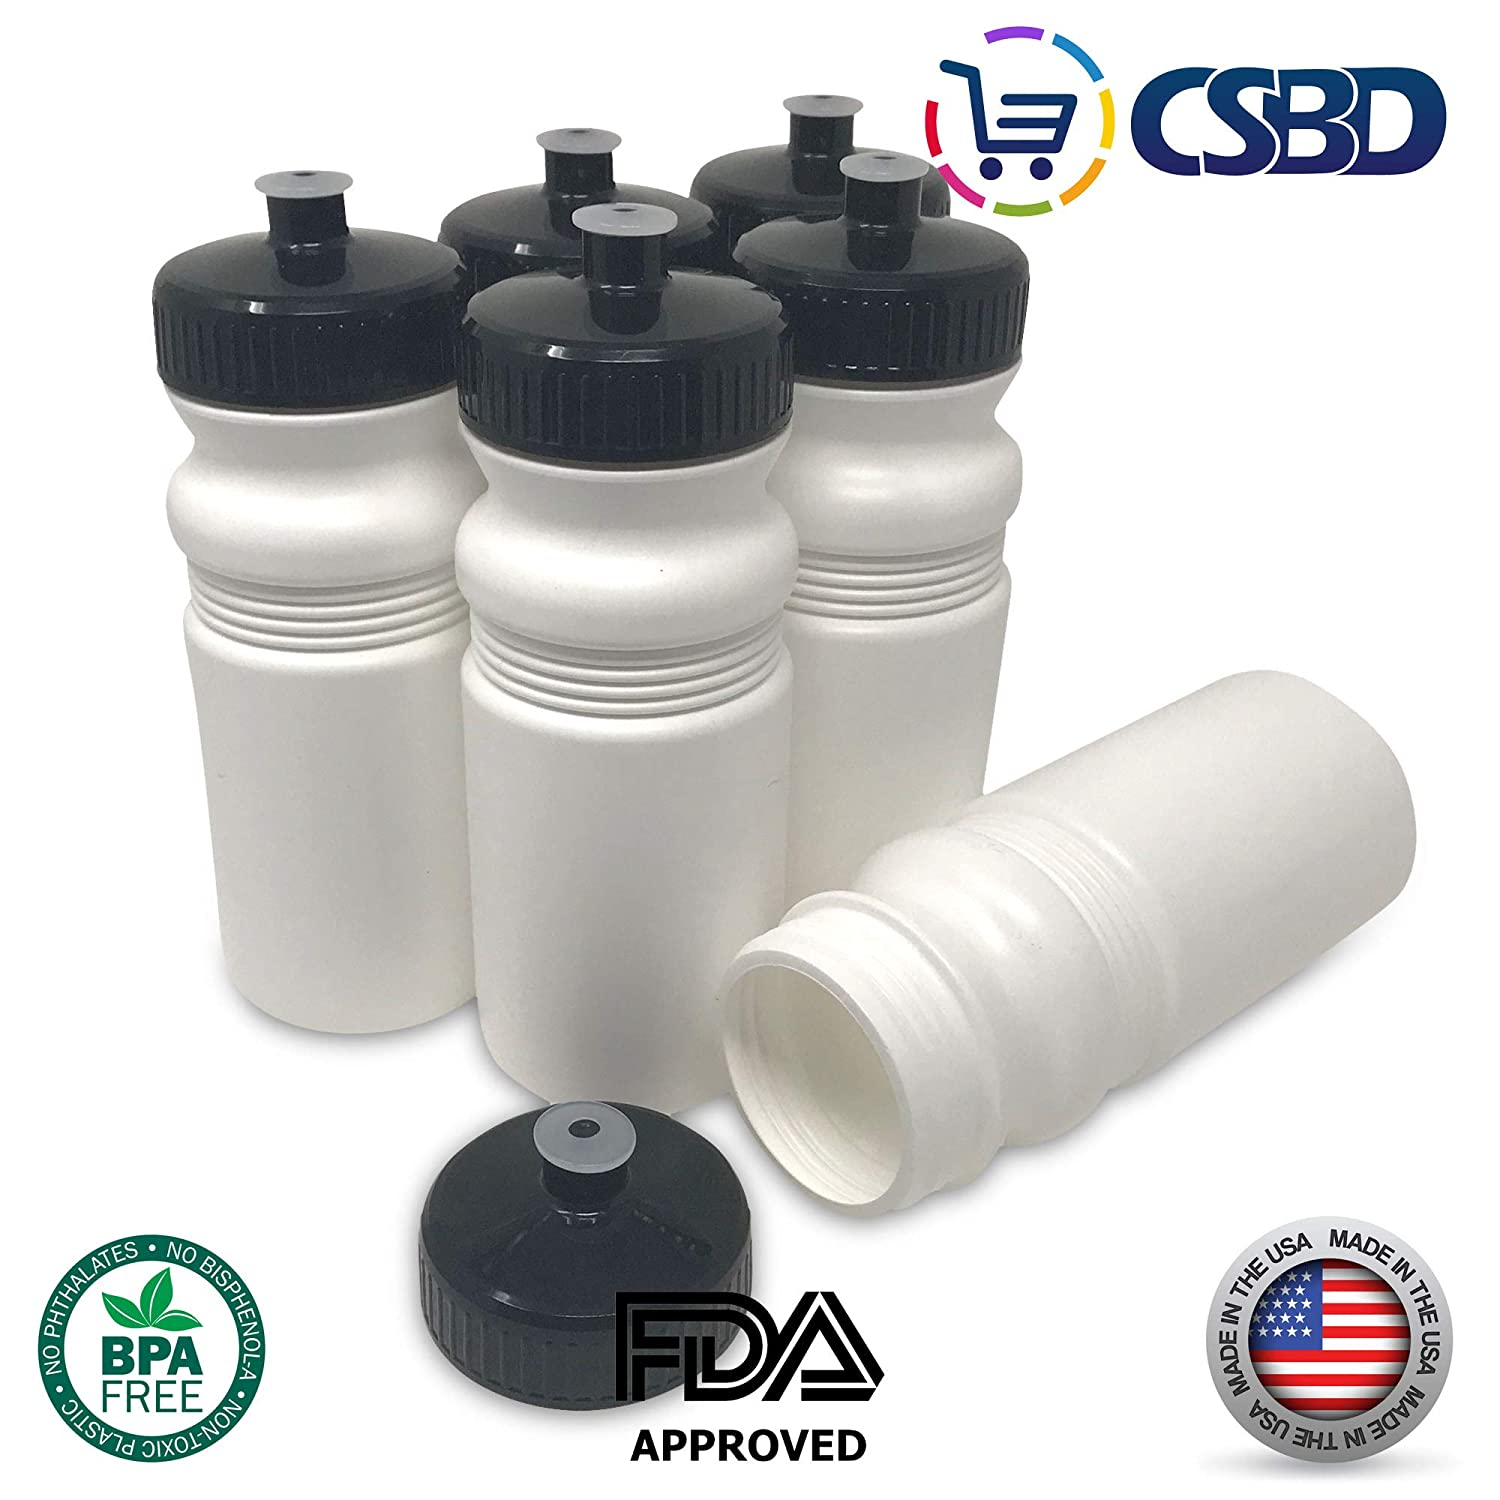 BPA Free HDPE Plastic CSBD Blank 20 oz Sports and Fitness Squeeze Water Bottles Bulk Made in USA 6 Pack